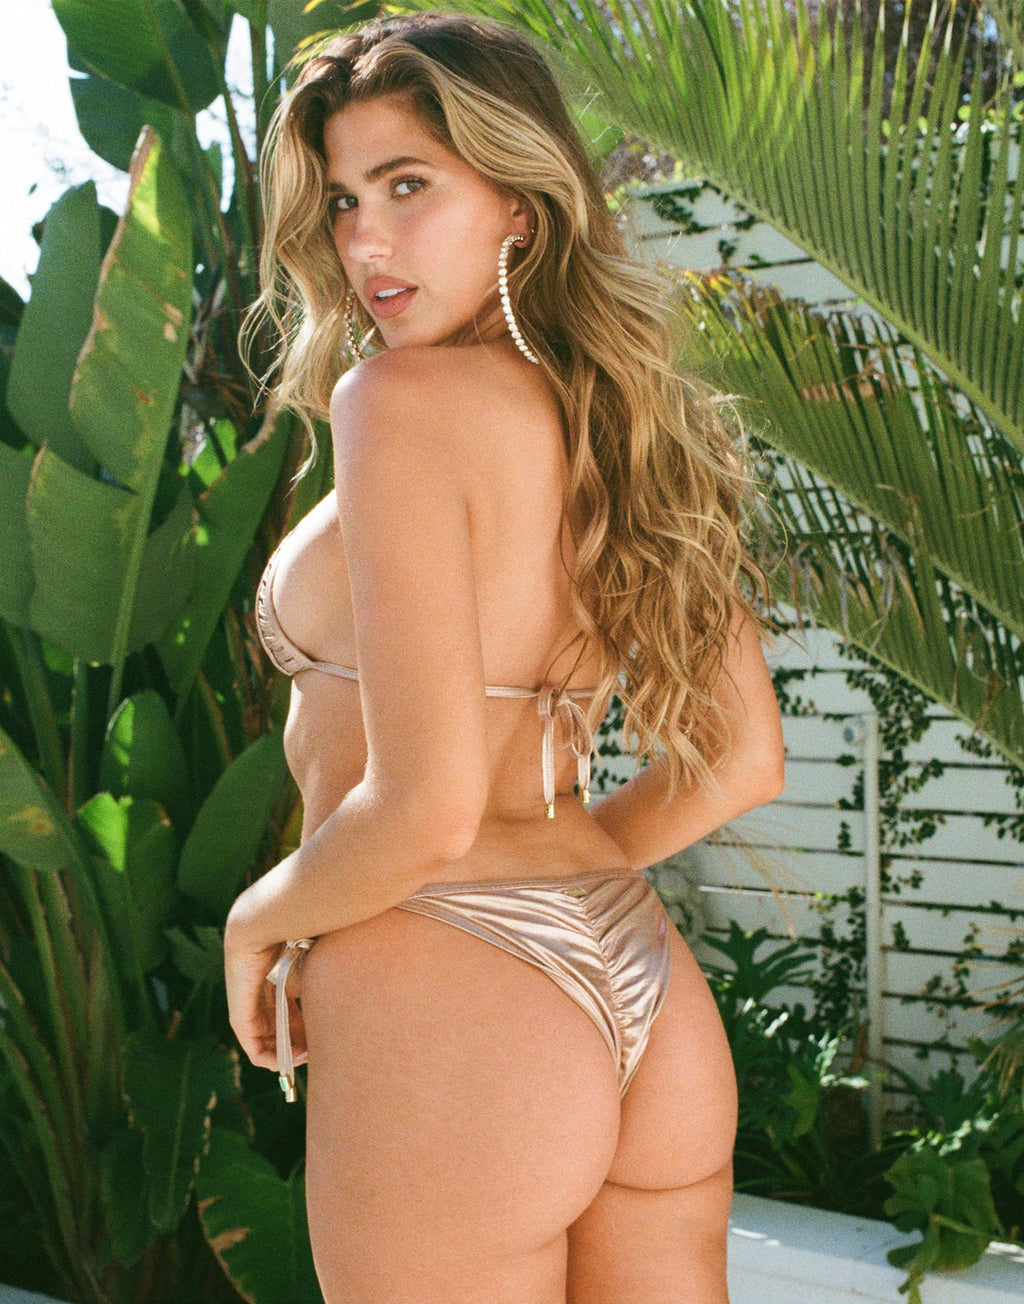 Hard Summer Tie Side Bikini Bottom in Rose Gold with Nude Lining - Back View